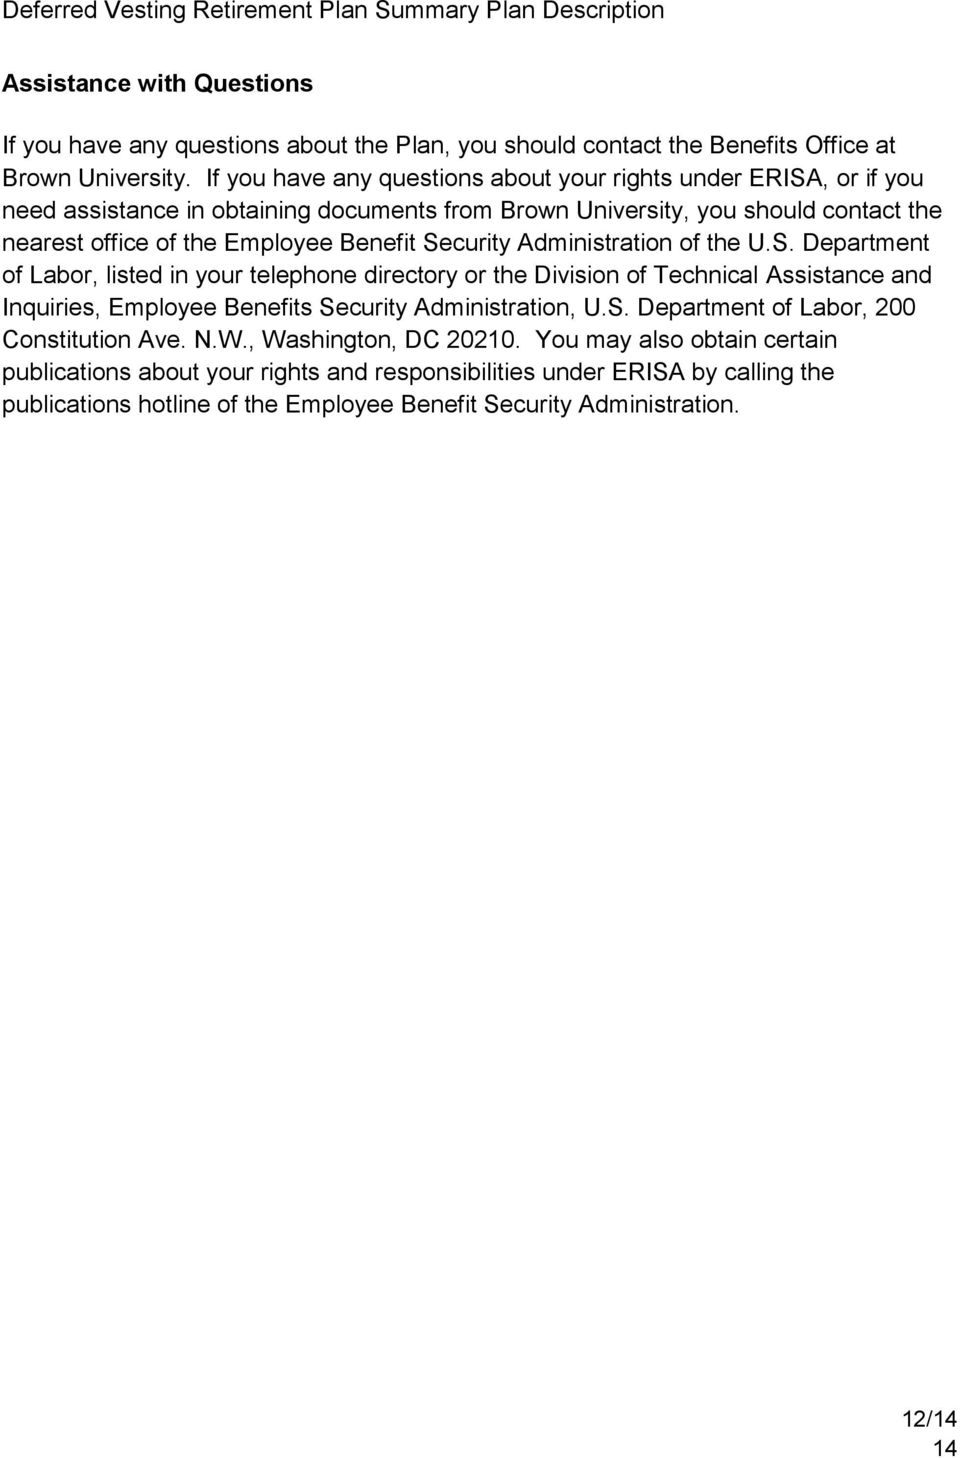 Security Administration of the U.S. Department of Labor, listed in your telephone directory or the Division of Technical Assistance and Inquiries, Employee Benefits Security Administration, U.